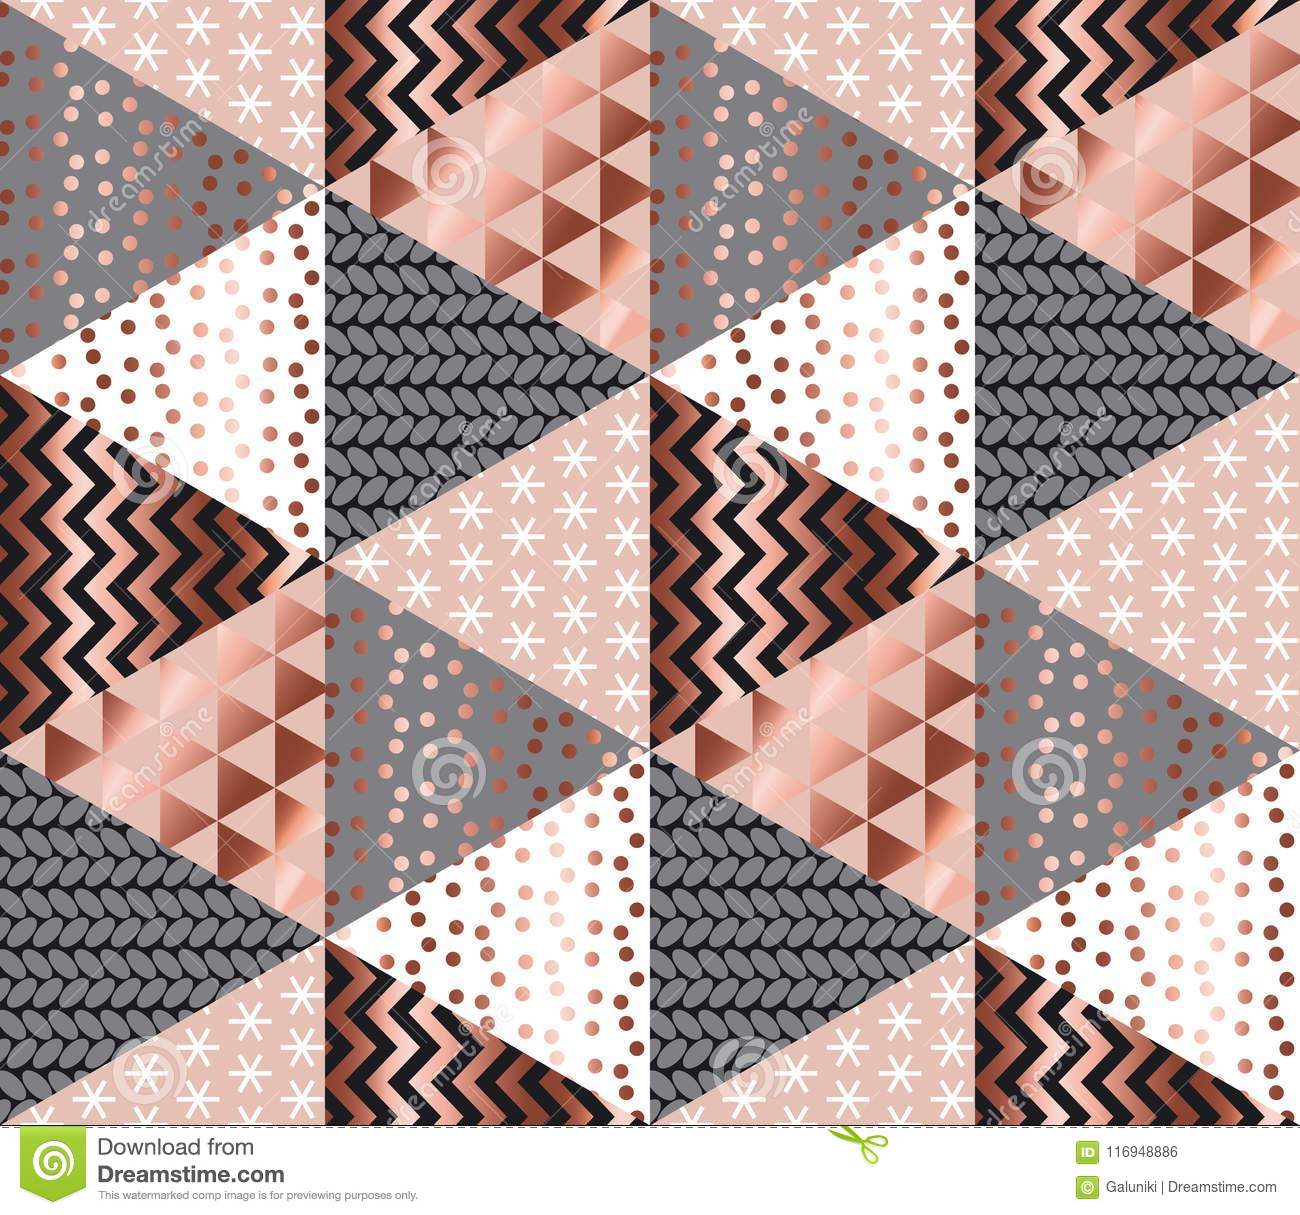 luxury rose gold xmas geometric seamless pattern for background wrapping paper fabric backdrop elegant christmas abstract patterns design element - Elegant Christmas Wrapping Paper